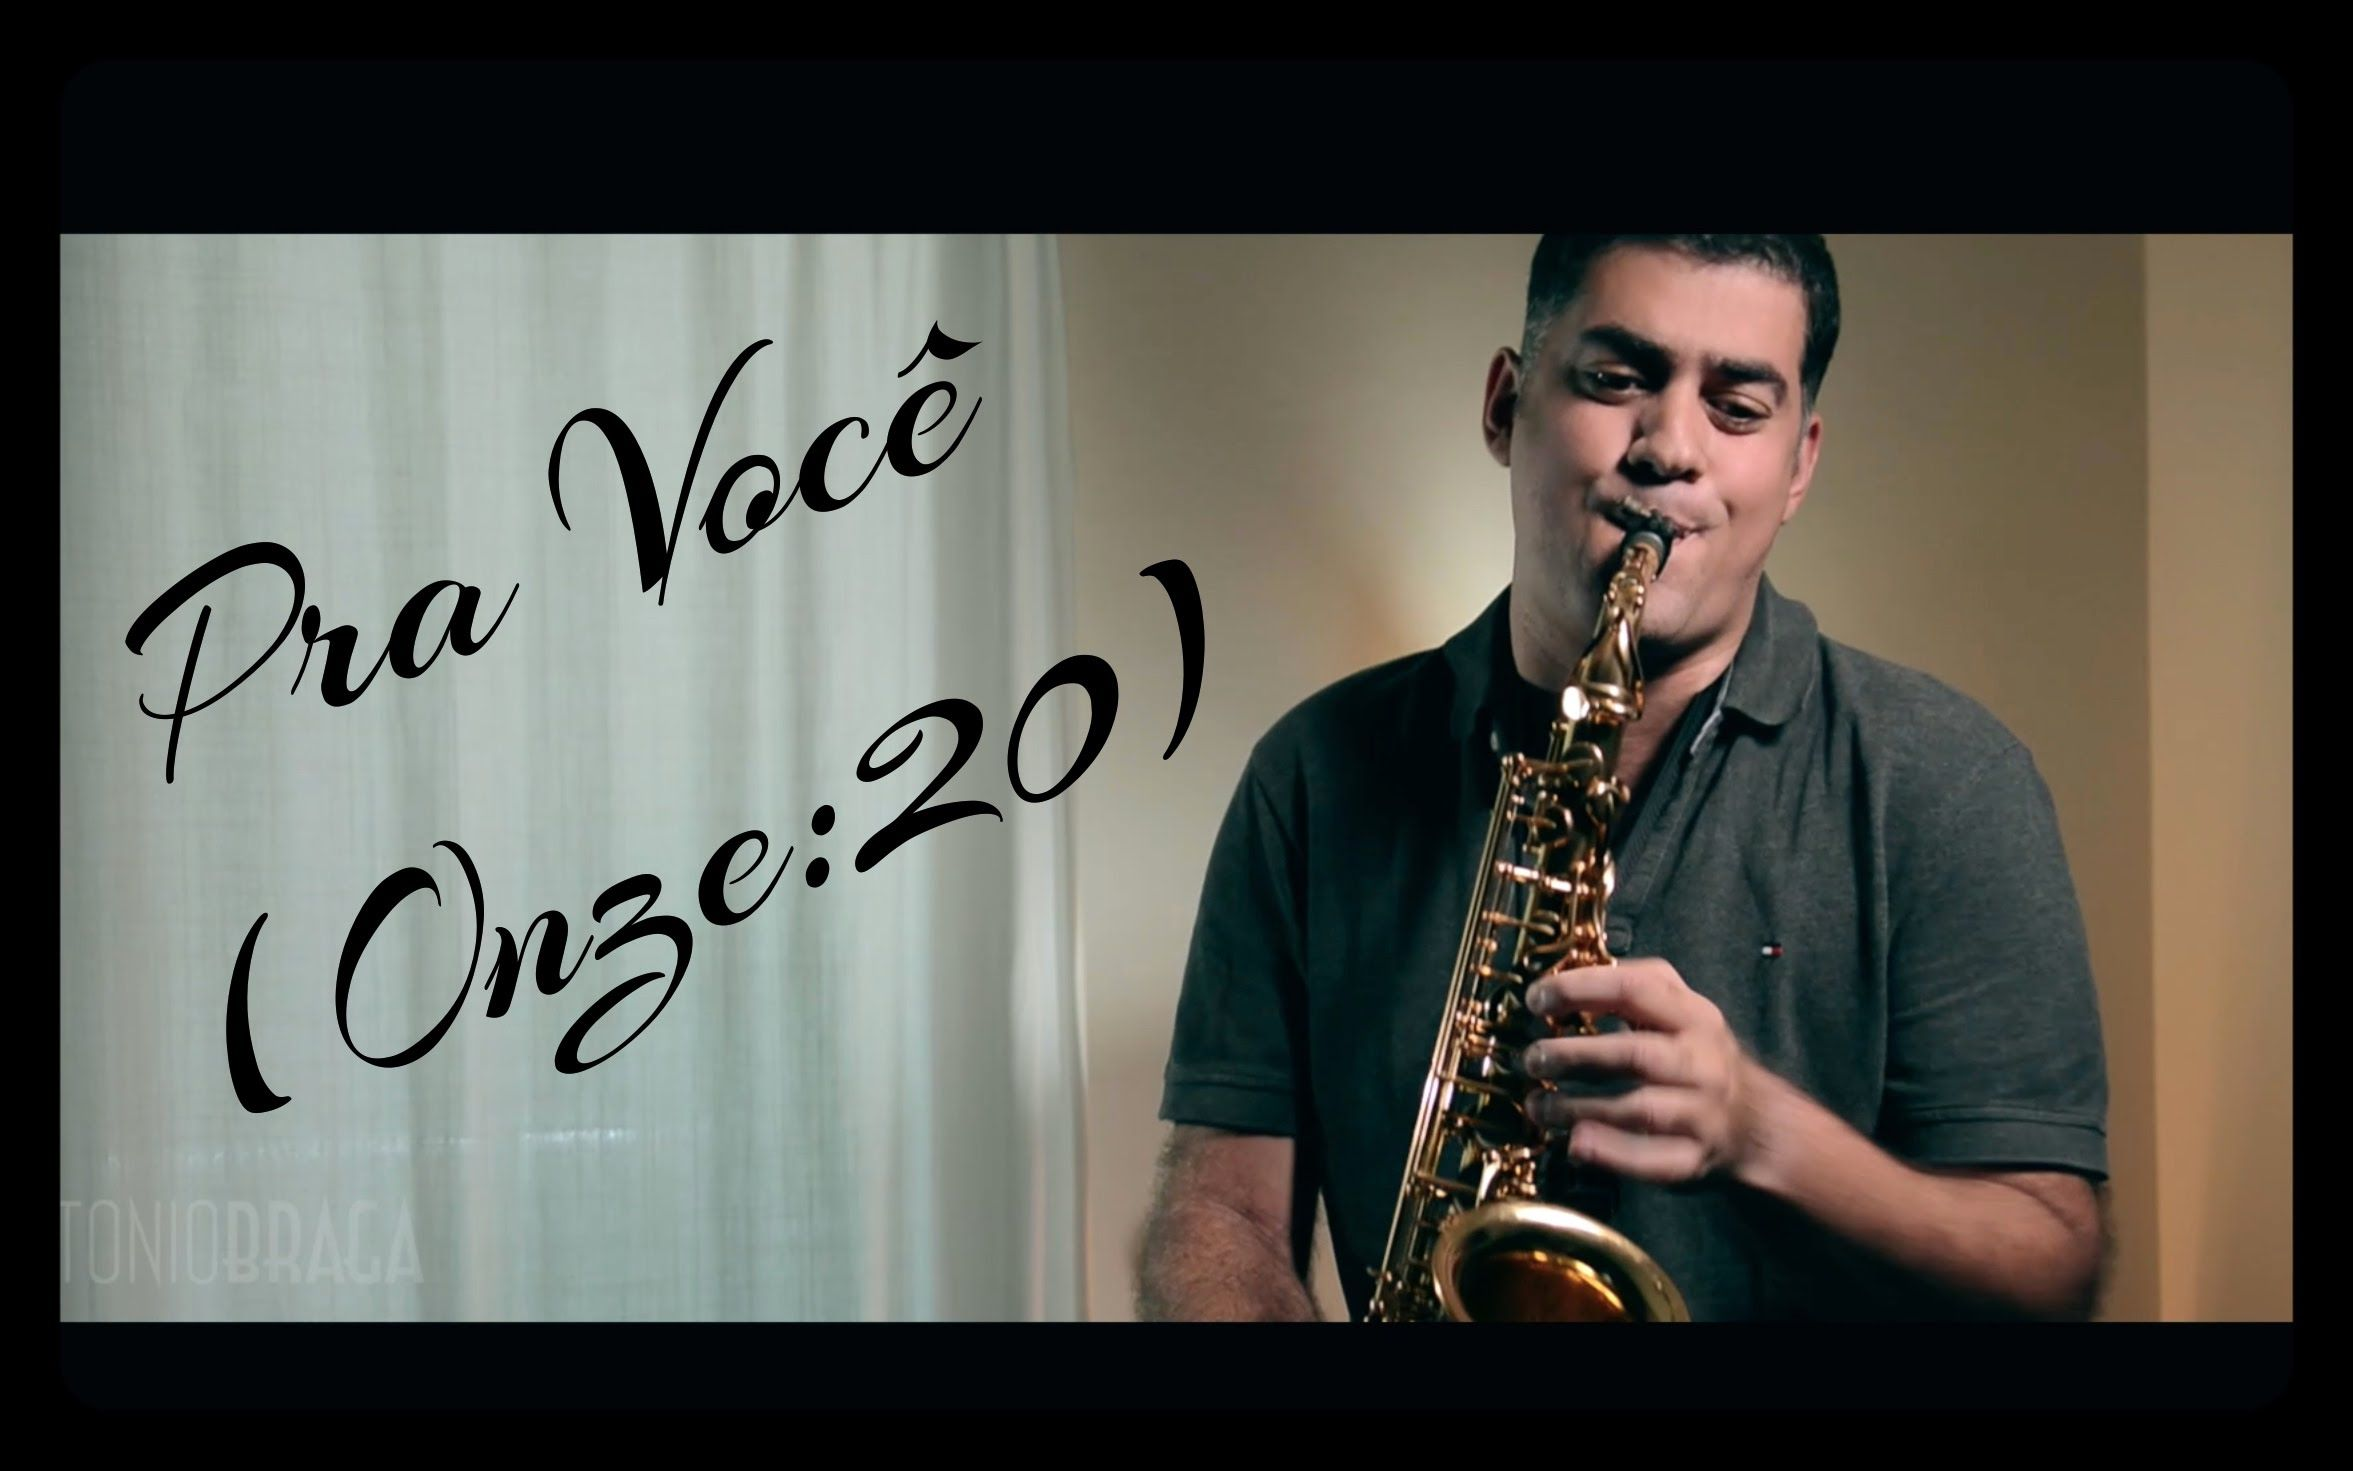 Onze 20 Pra Voce cover by Antonio Braga (antoniobragasax video)